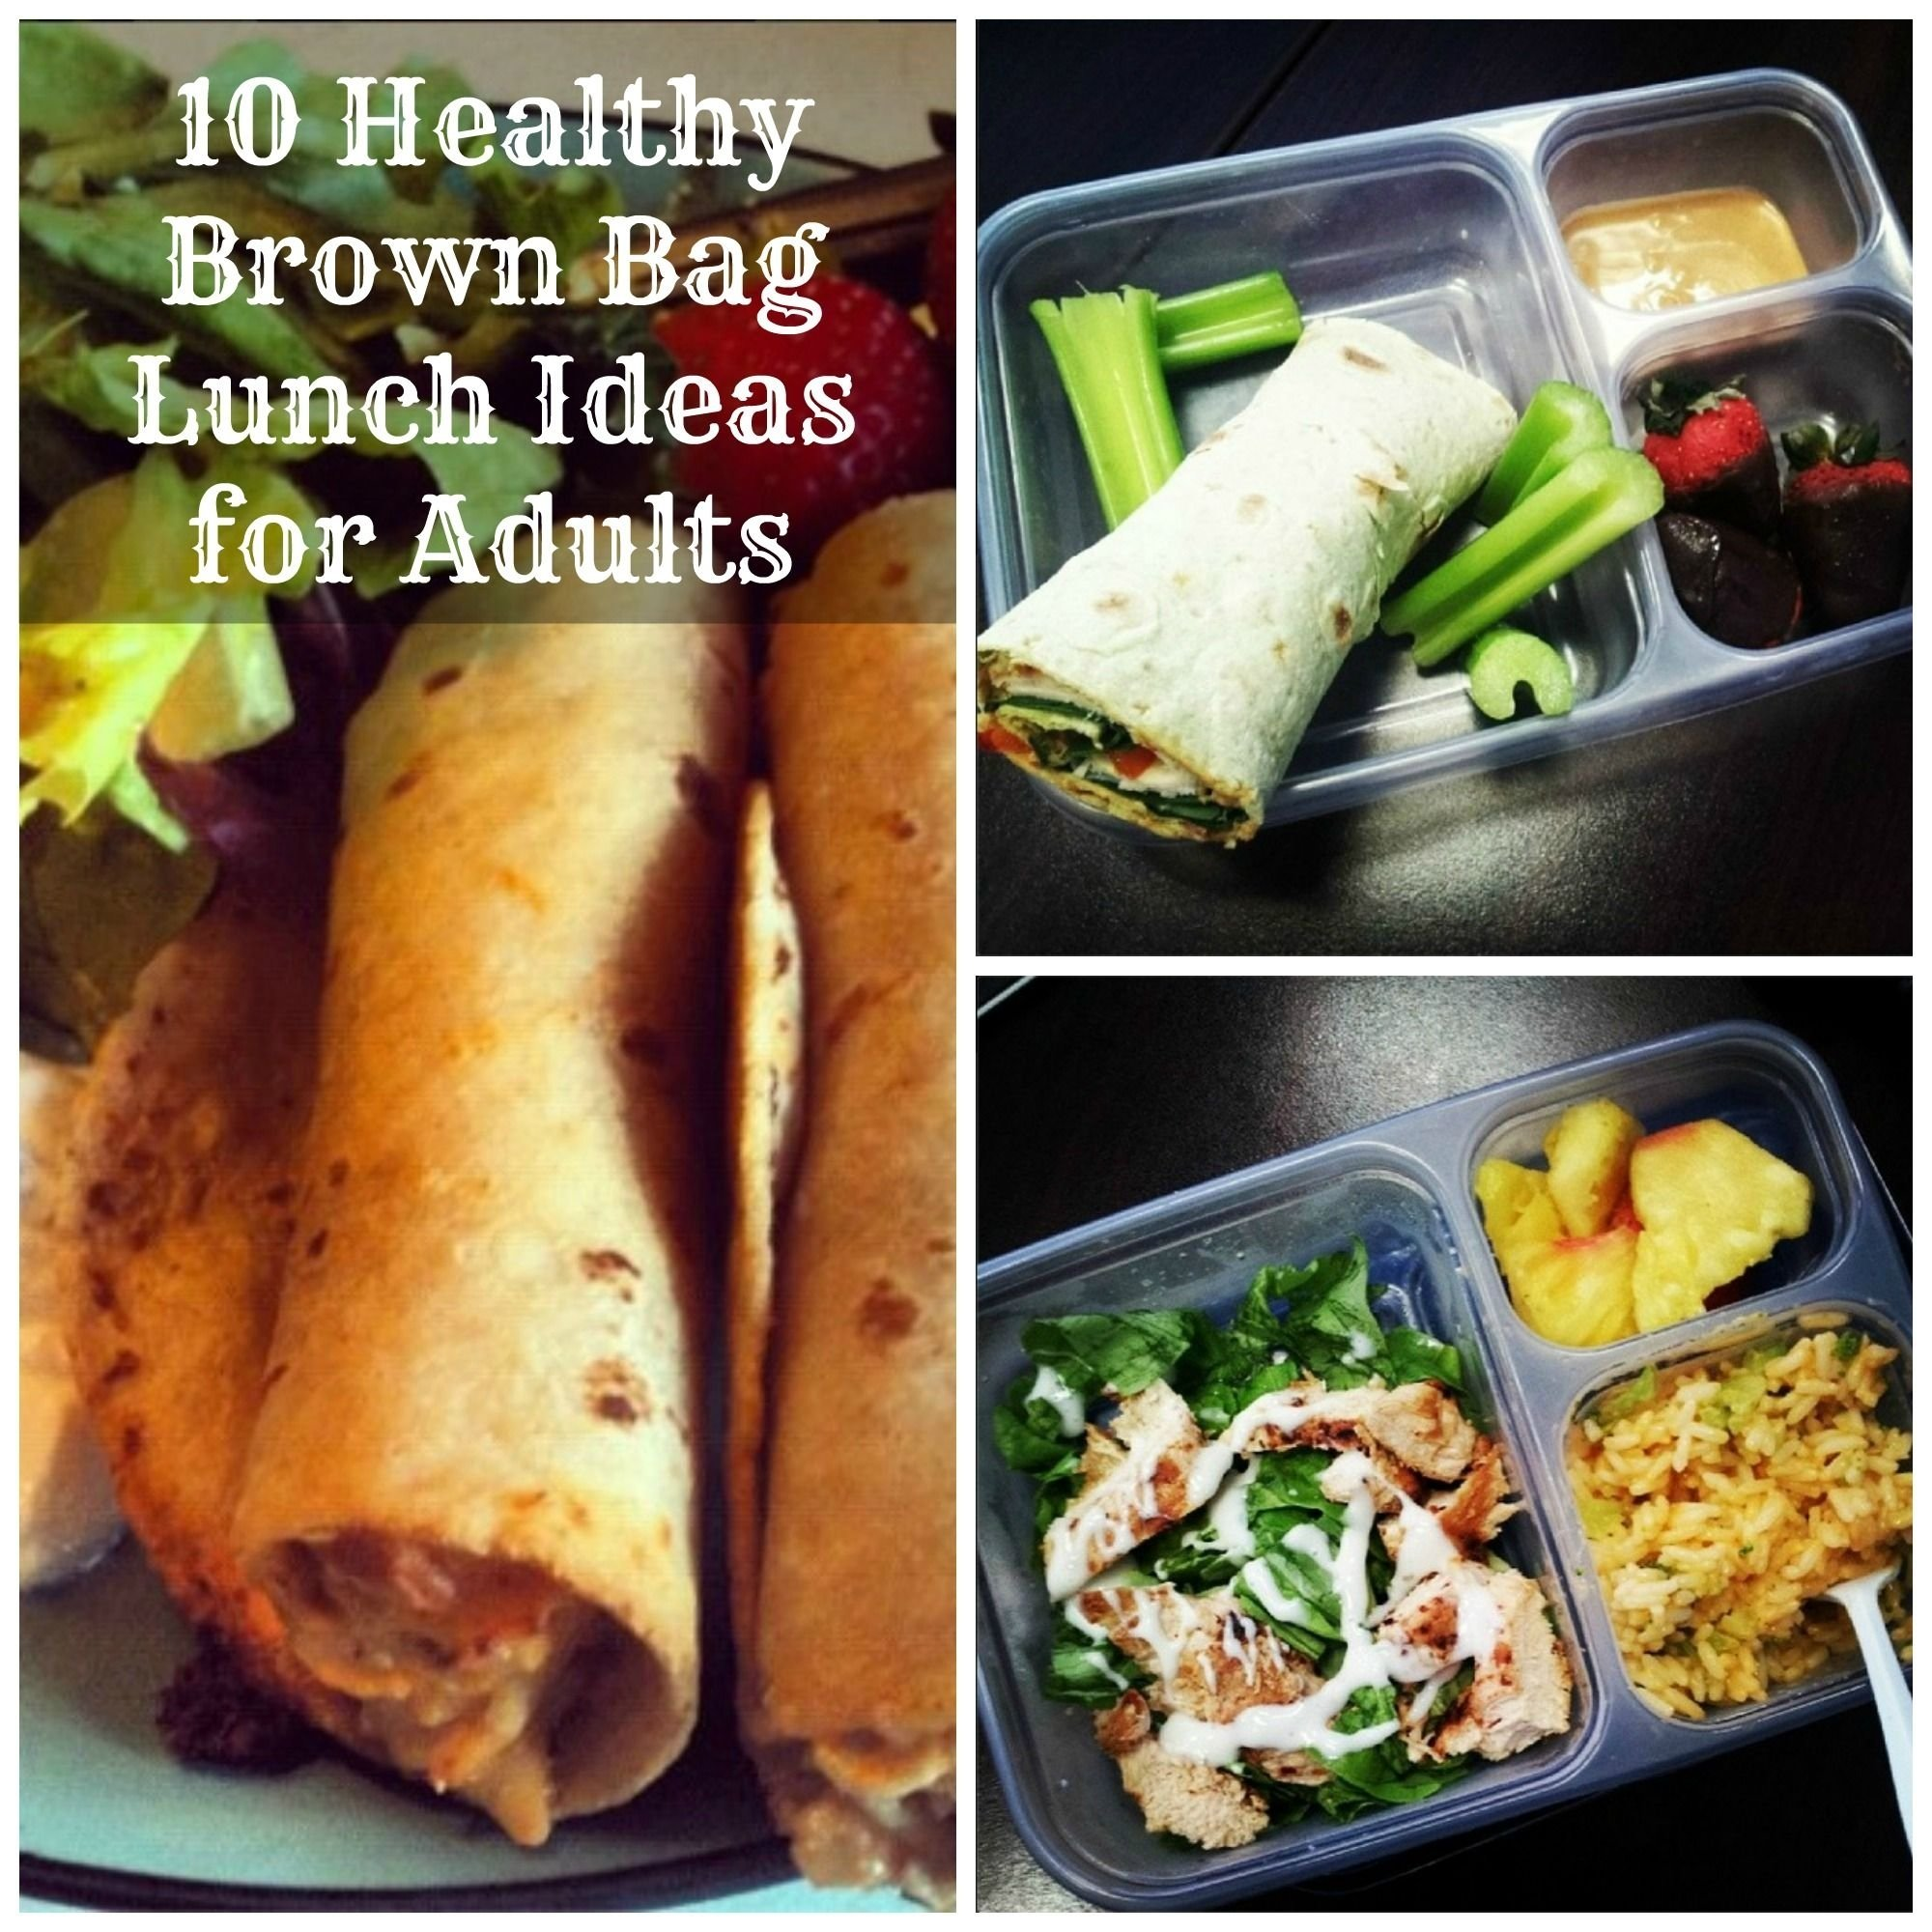 10 healthy brown bag lunch ideas for adults | the group board on